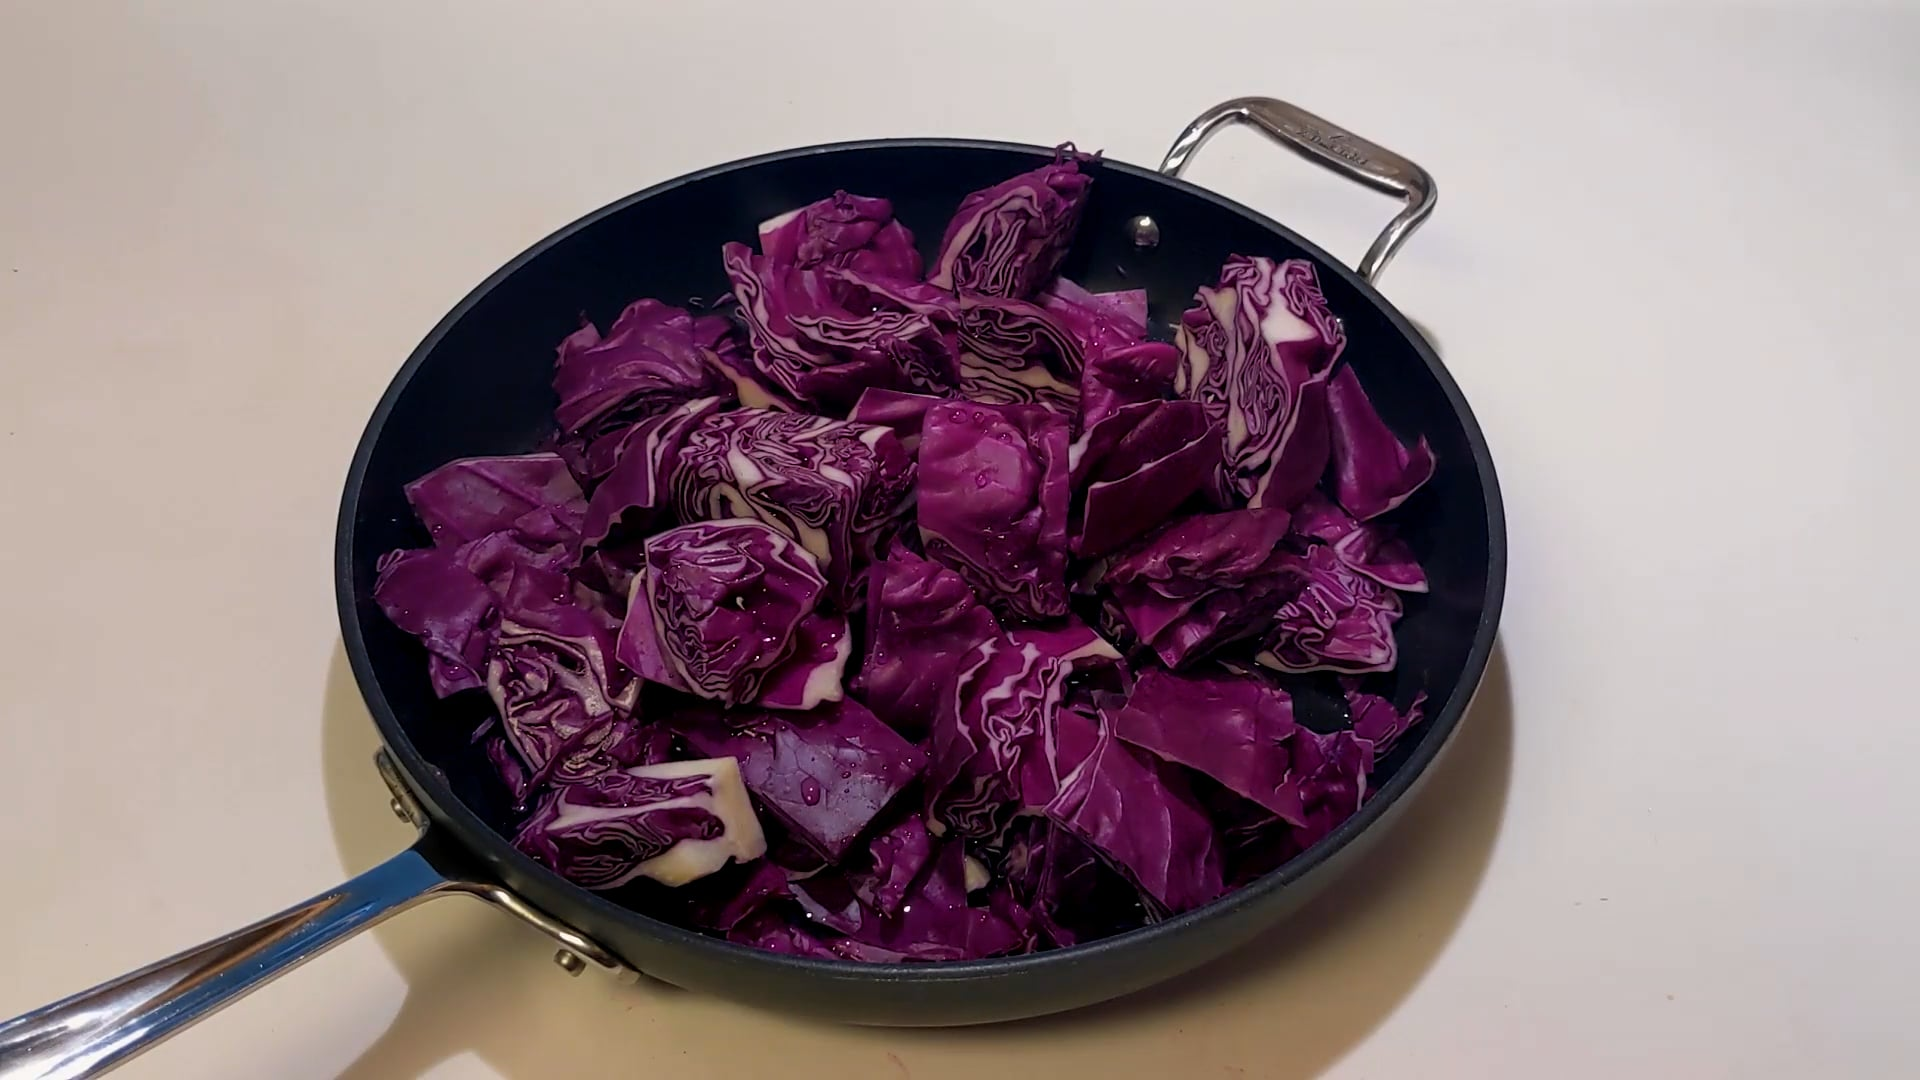 Getting the Most Color From Your Cabbage